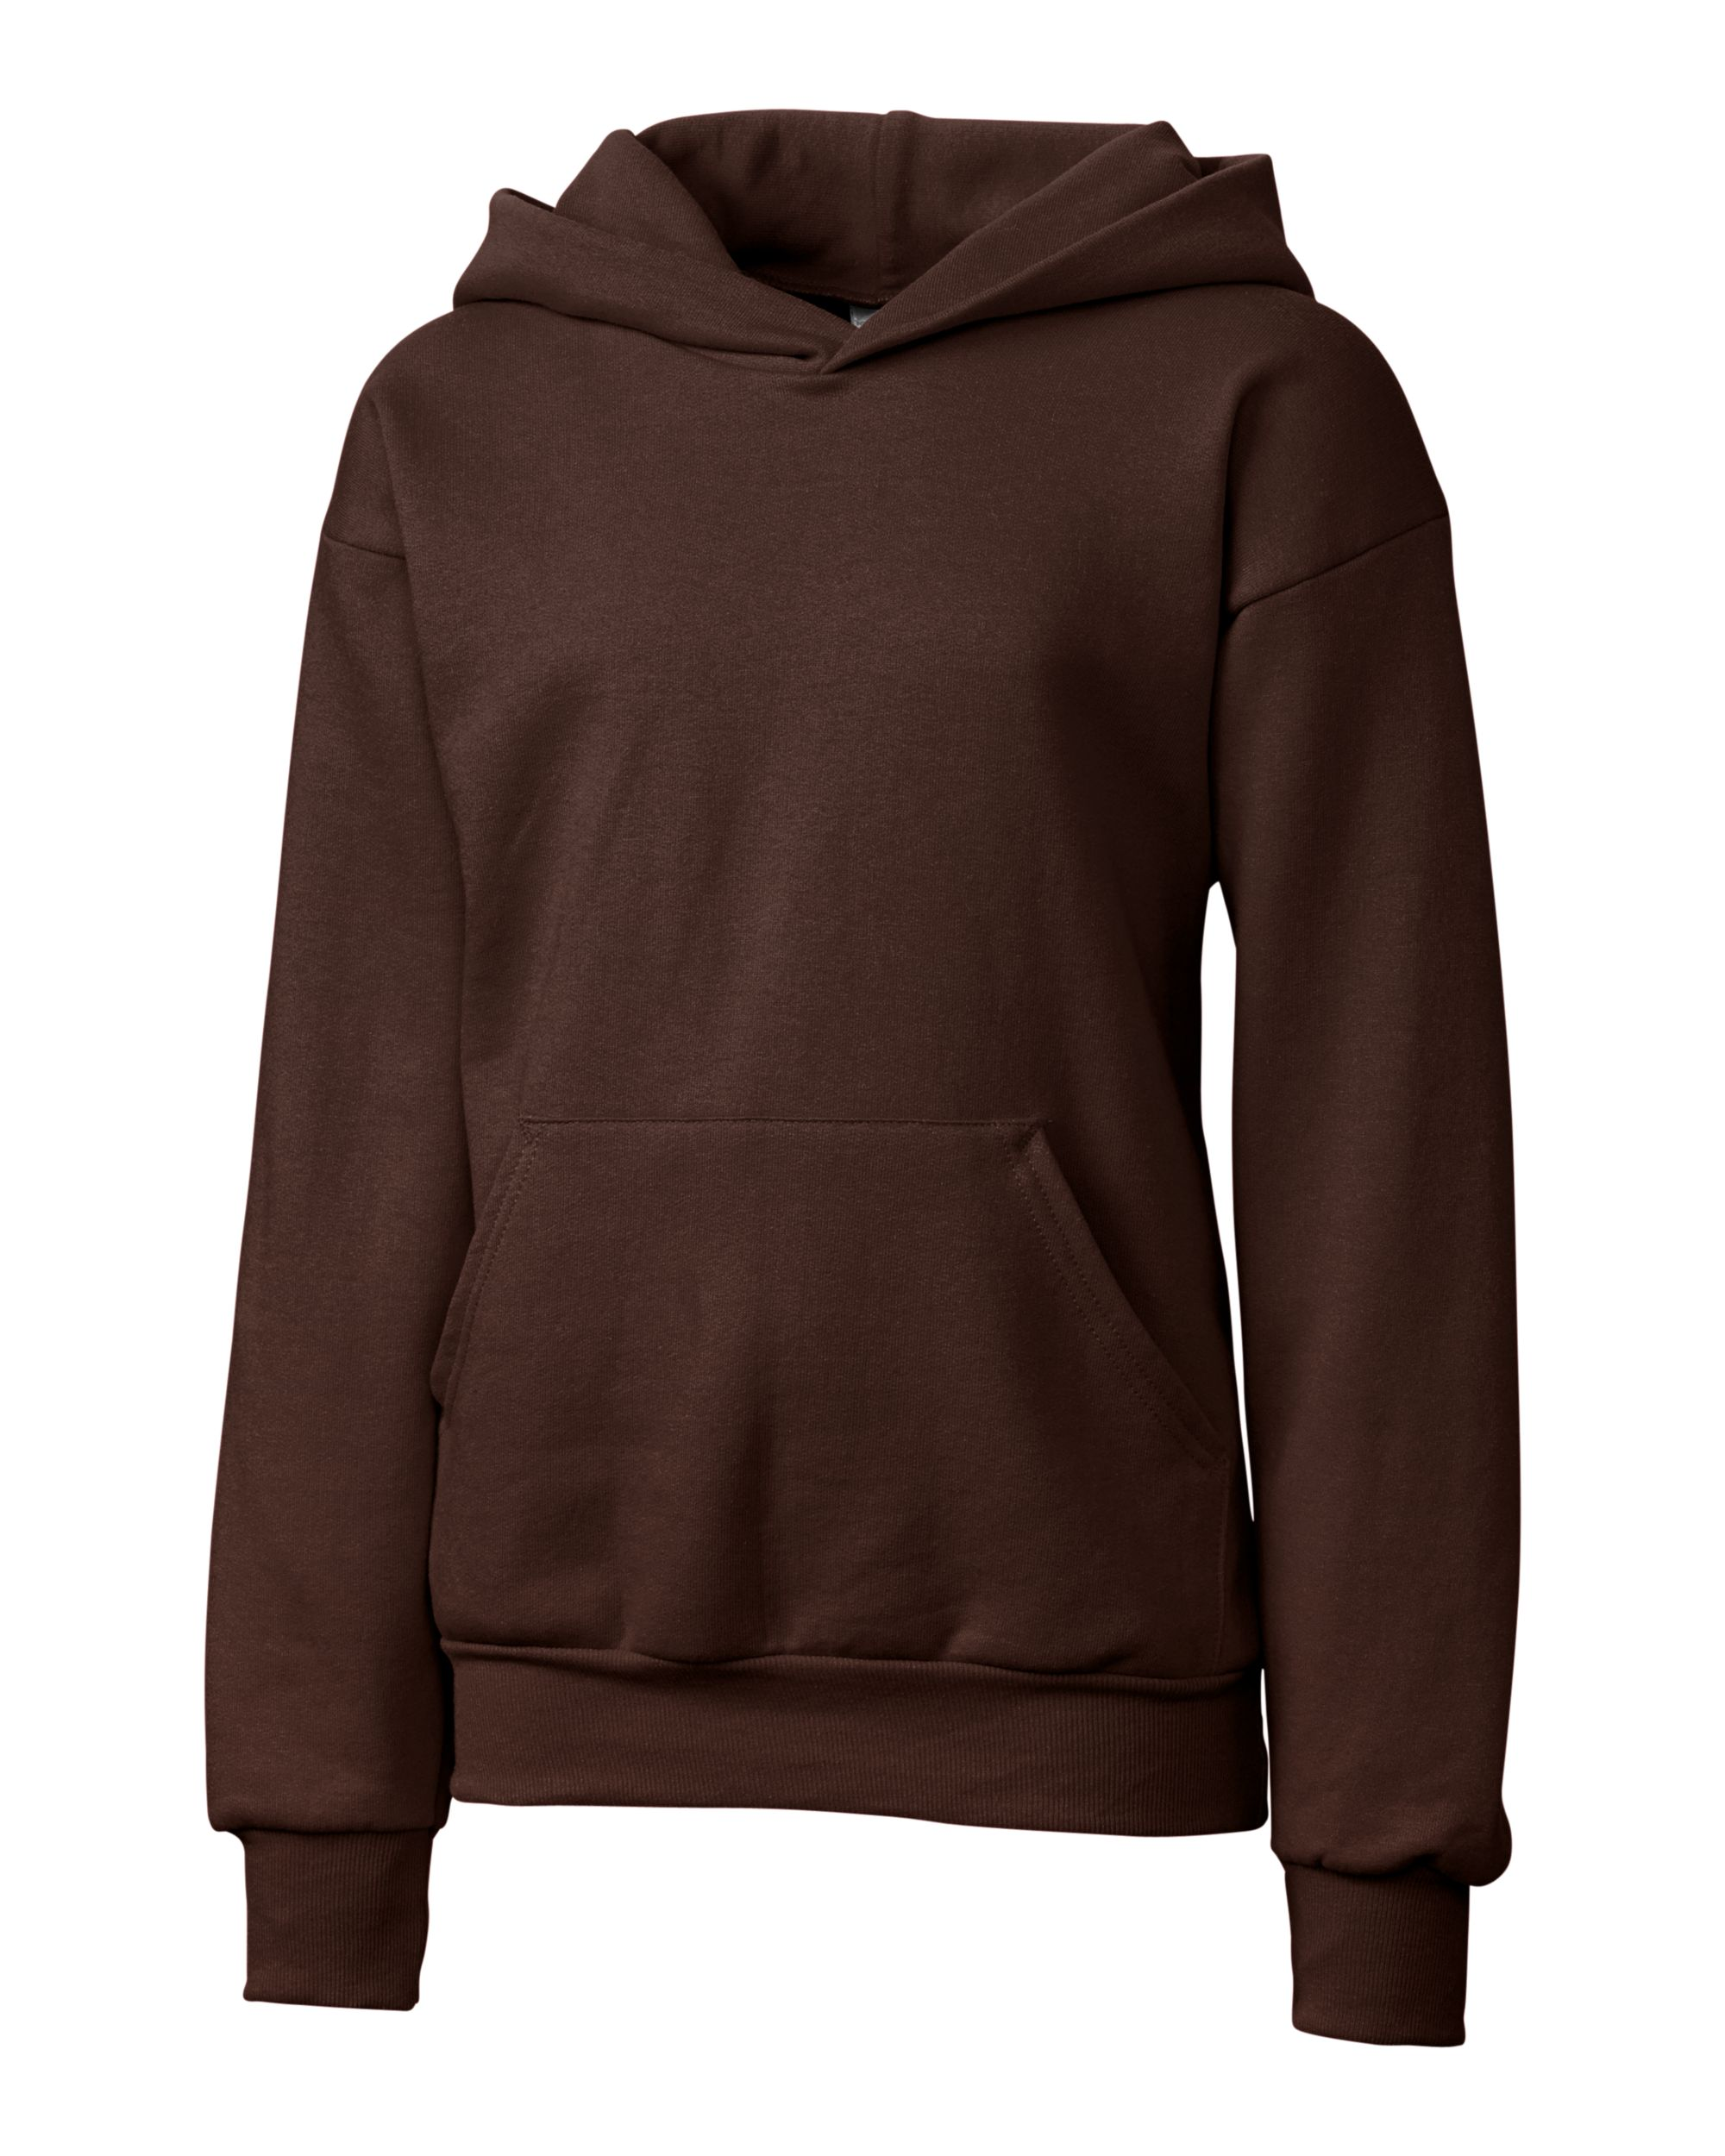 Clique Basics Youth Pullover Hoodie YRK02001 by C/&B